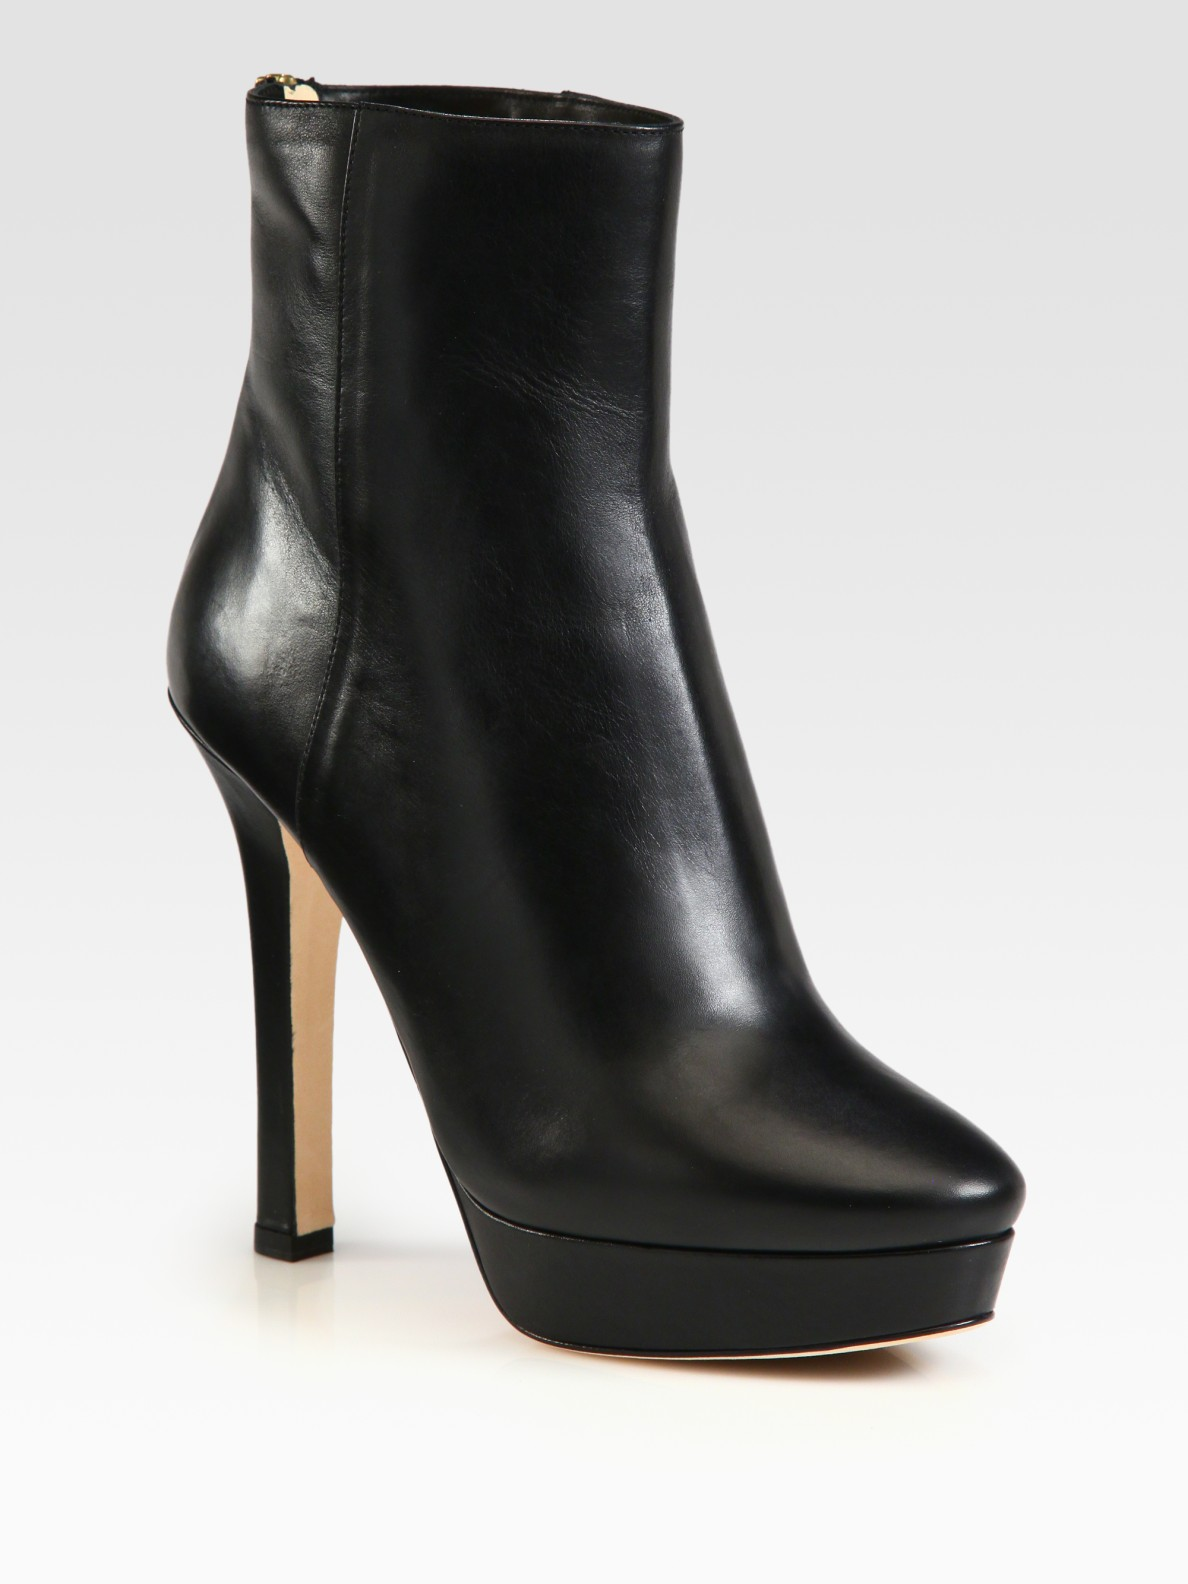 fa3589b1e5a5 ... discount code for lyst jimmy choo magic leather platform ankle boots in  black e6474 f9fb6